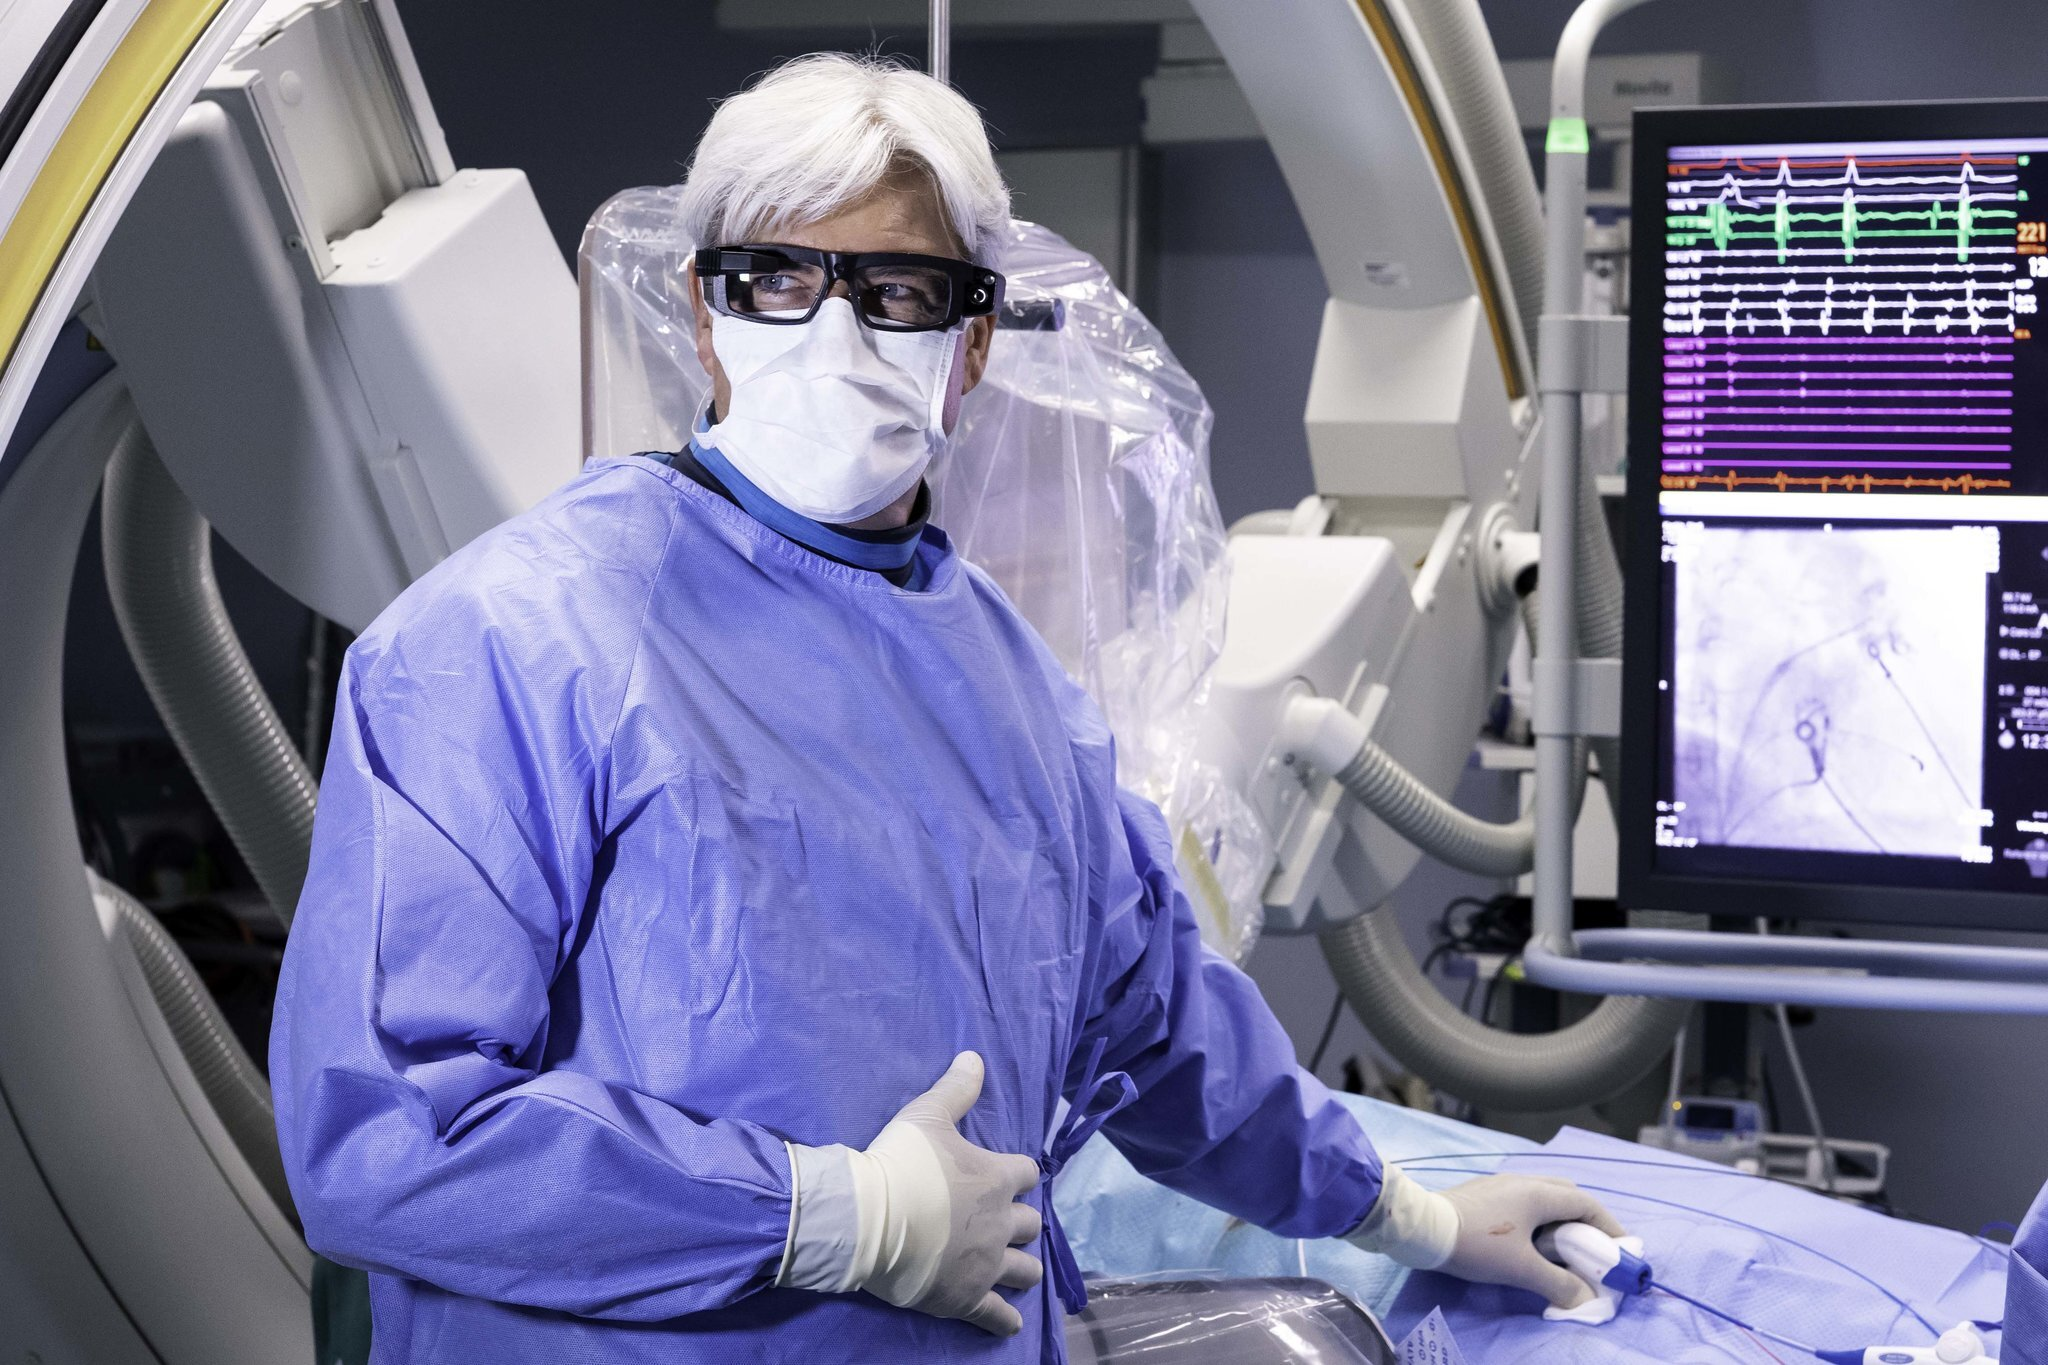 A Medical product specialist can collaborate with a surgeon from a distance